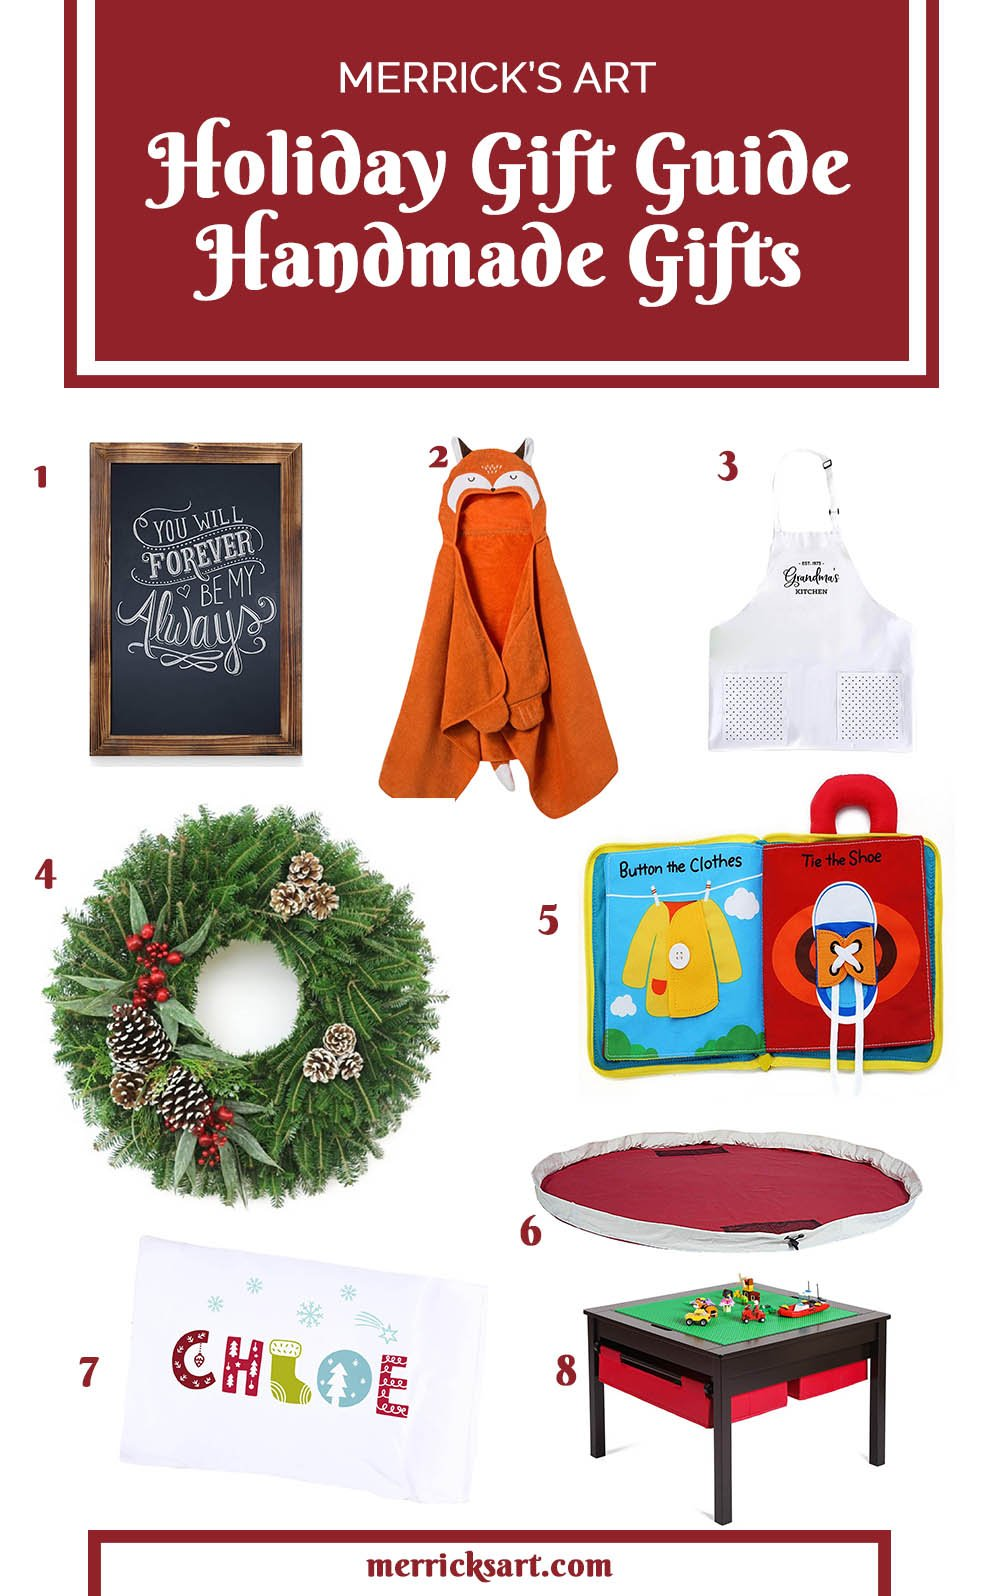 Handmade Gifts Holiday Gift Guide